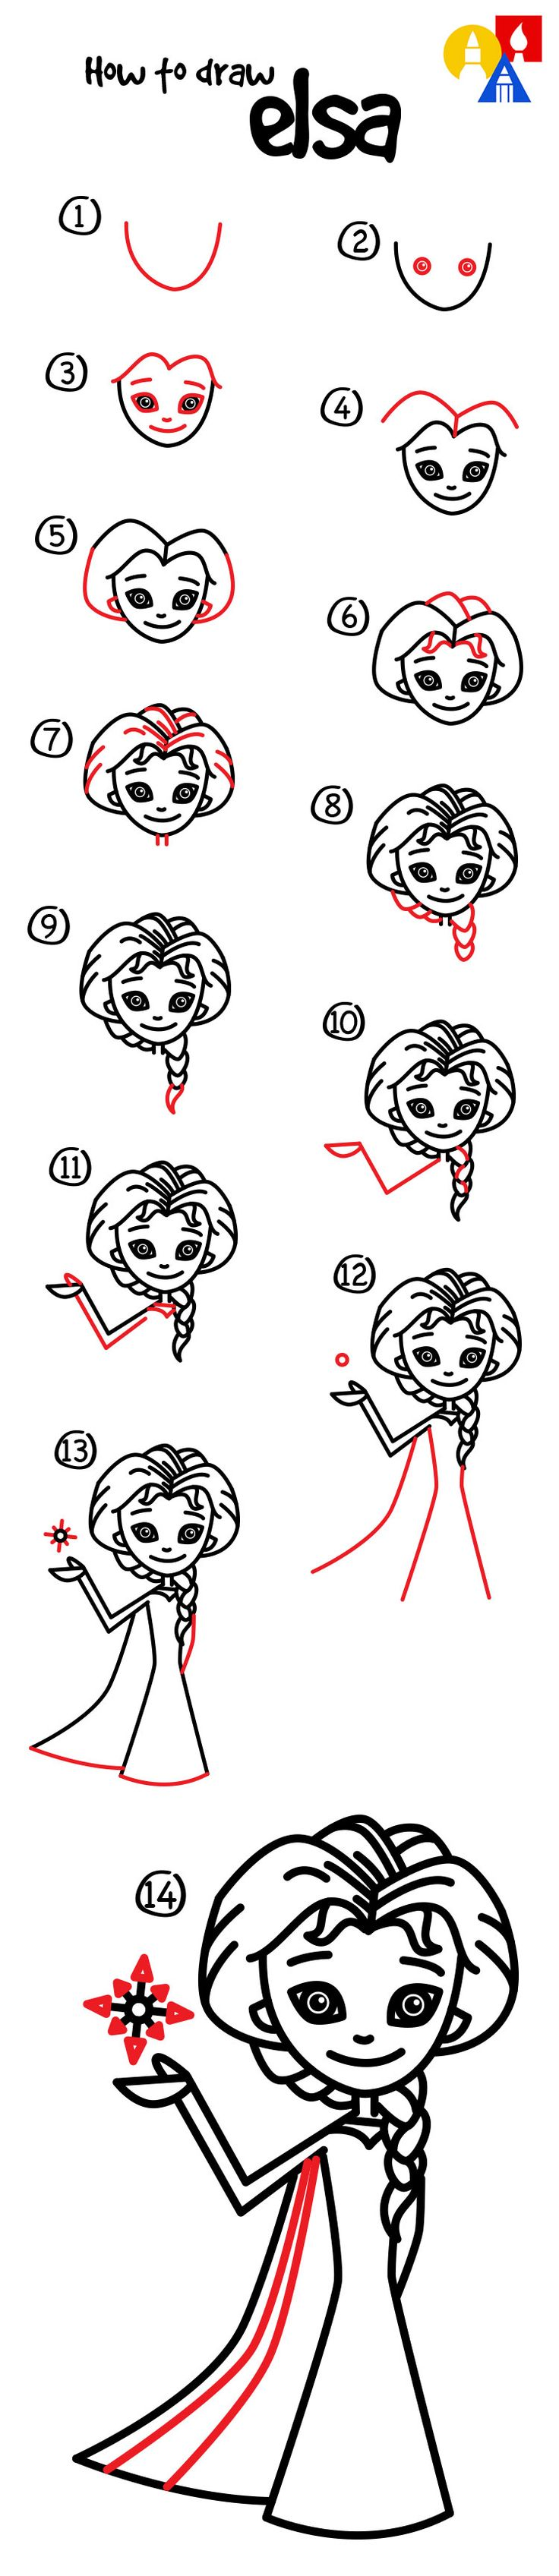 How to draw Elsa from Frozen!